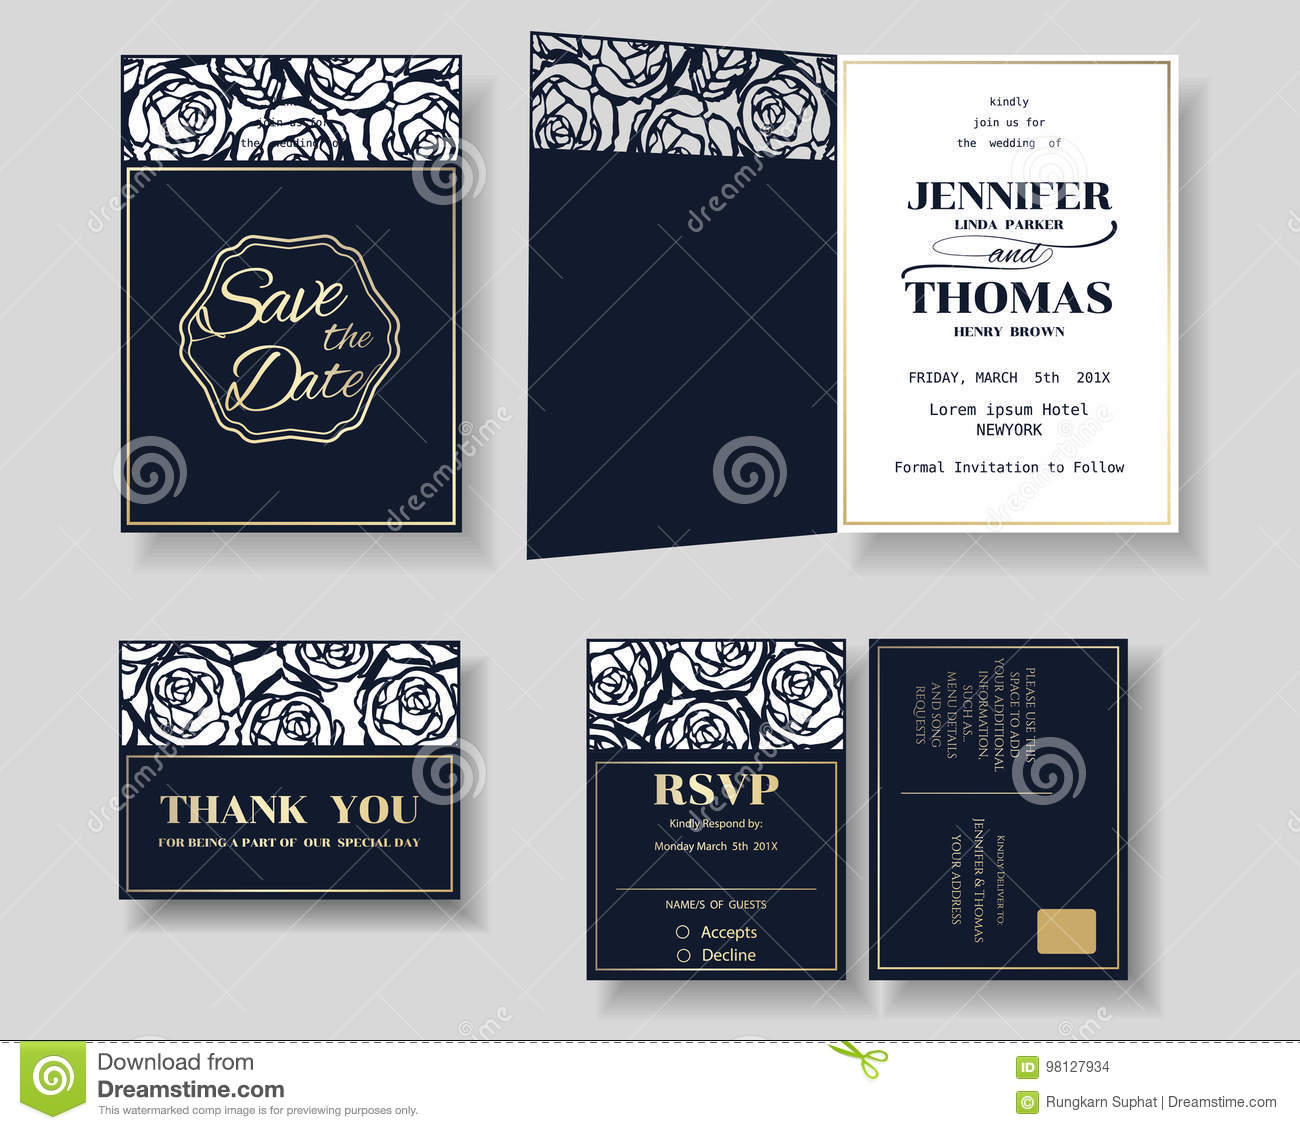 Set of laser cut wedding invitation card rose shape stock vector download set of laser cut wedding invitation card rose shape stock vector illustration stopboris Image collections